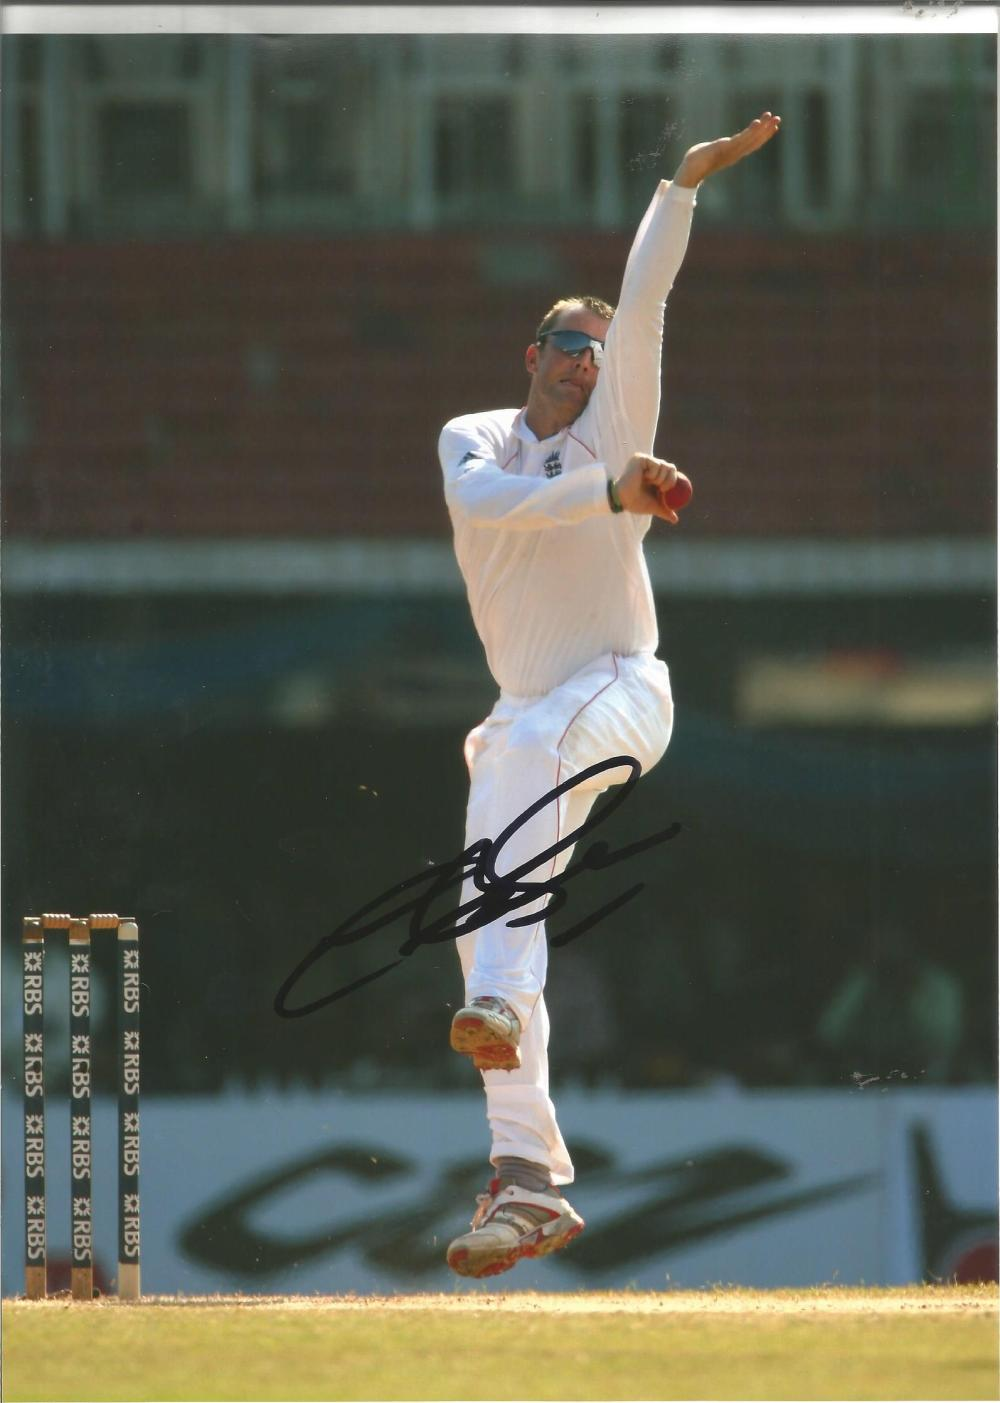 Cricket Graeme Swann 12x8 signed colour photo pictured bowling for England. Graeme Peter Swann (born